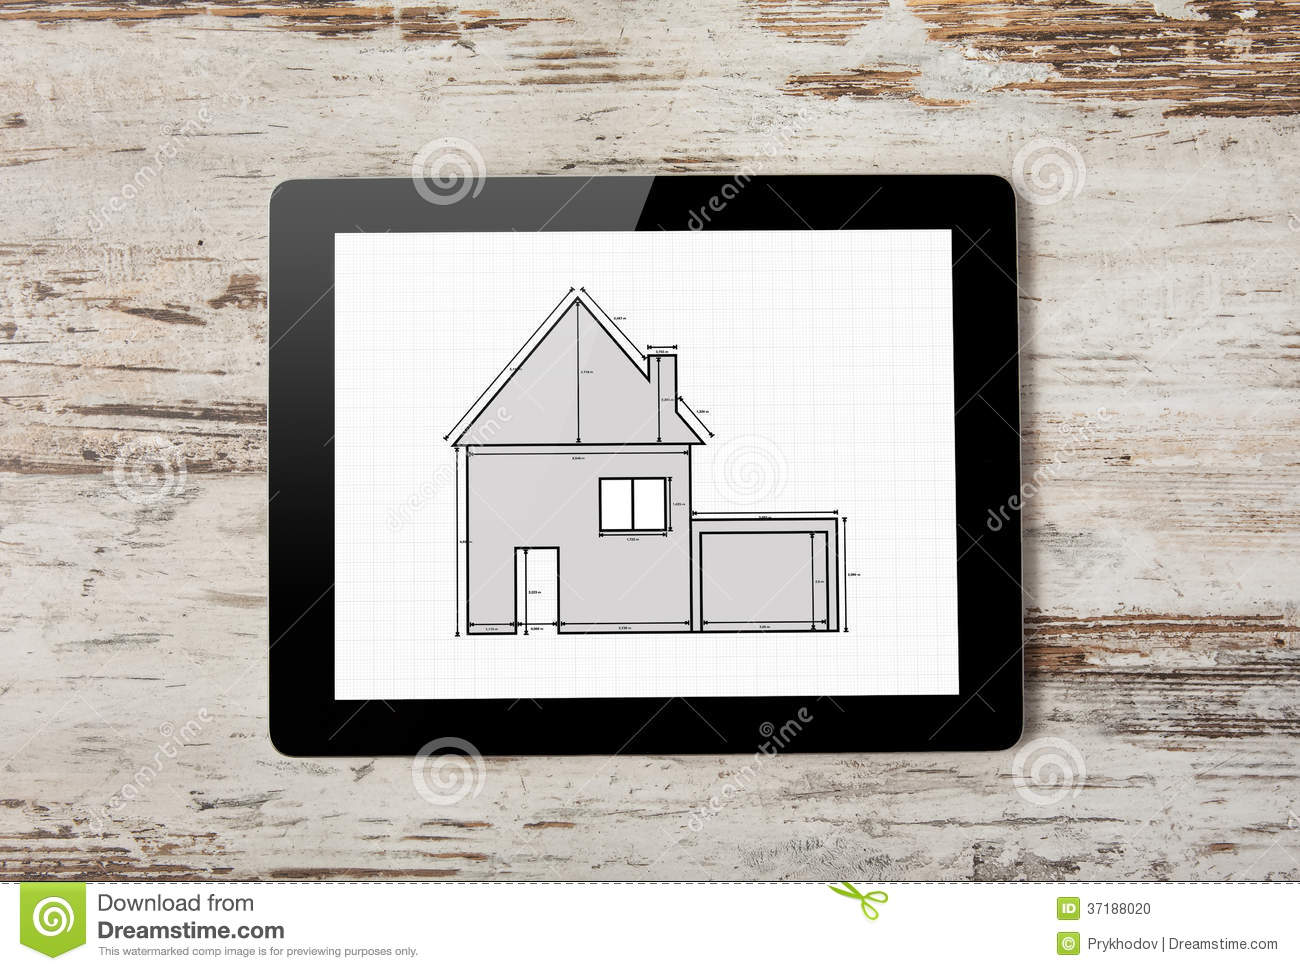 Tablet with drawing of apartment house on the screen on a background of wood